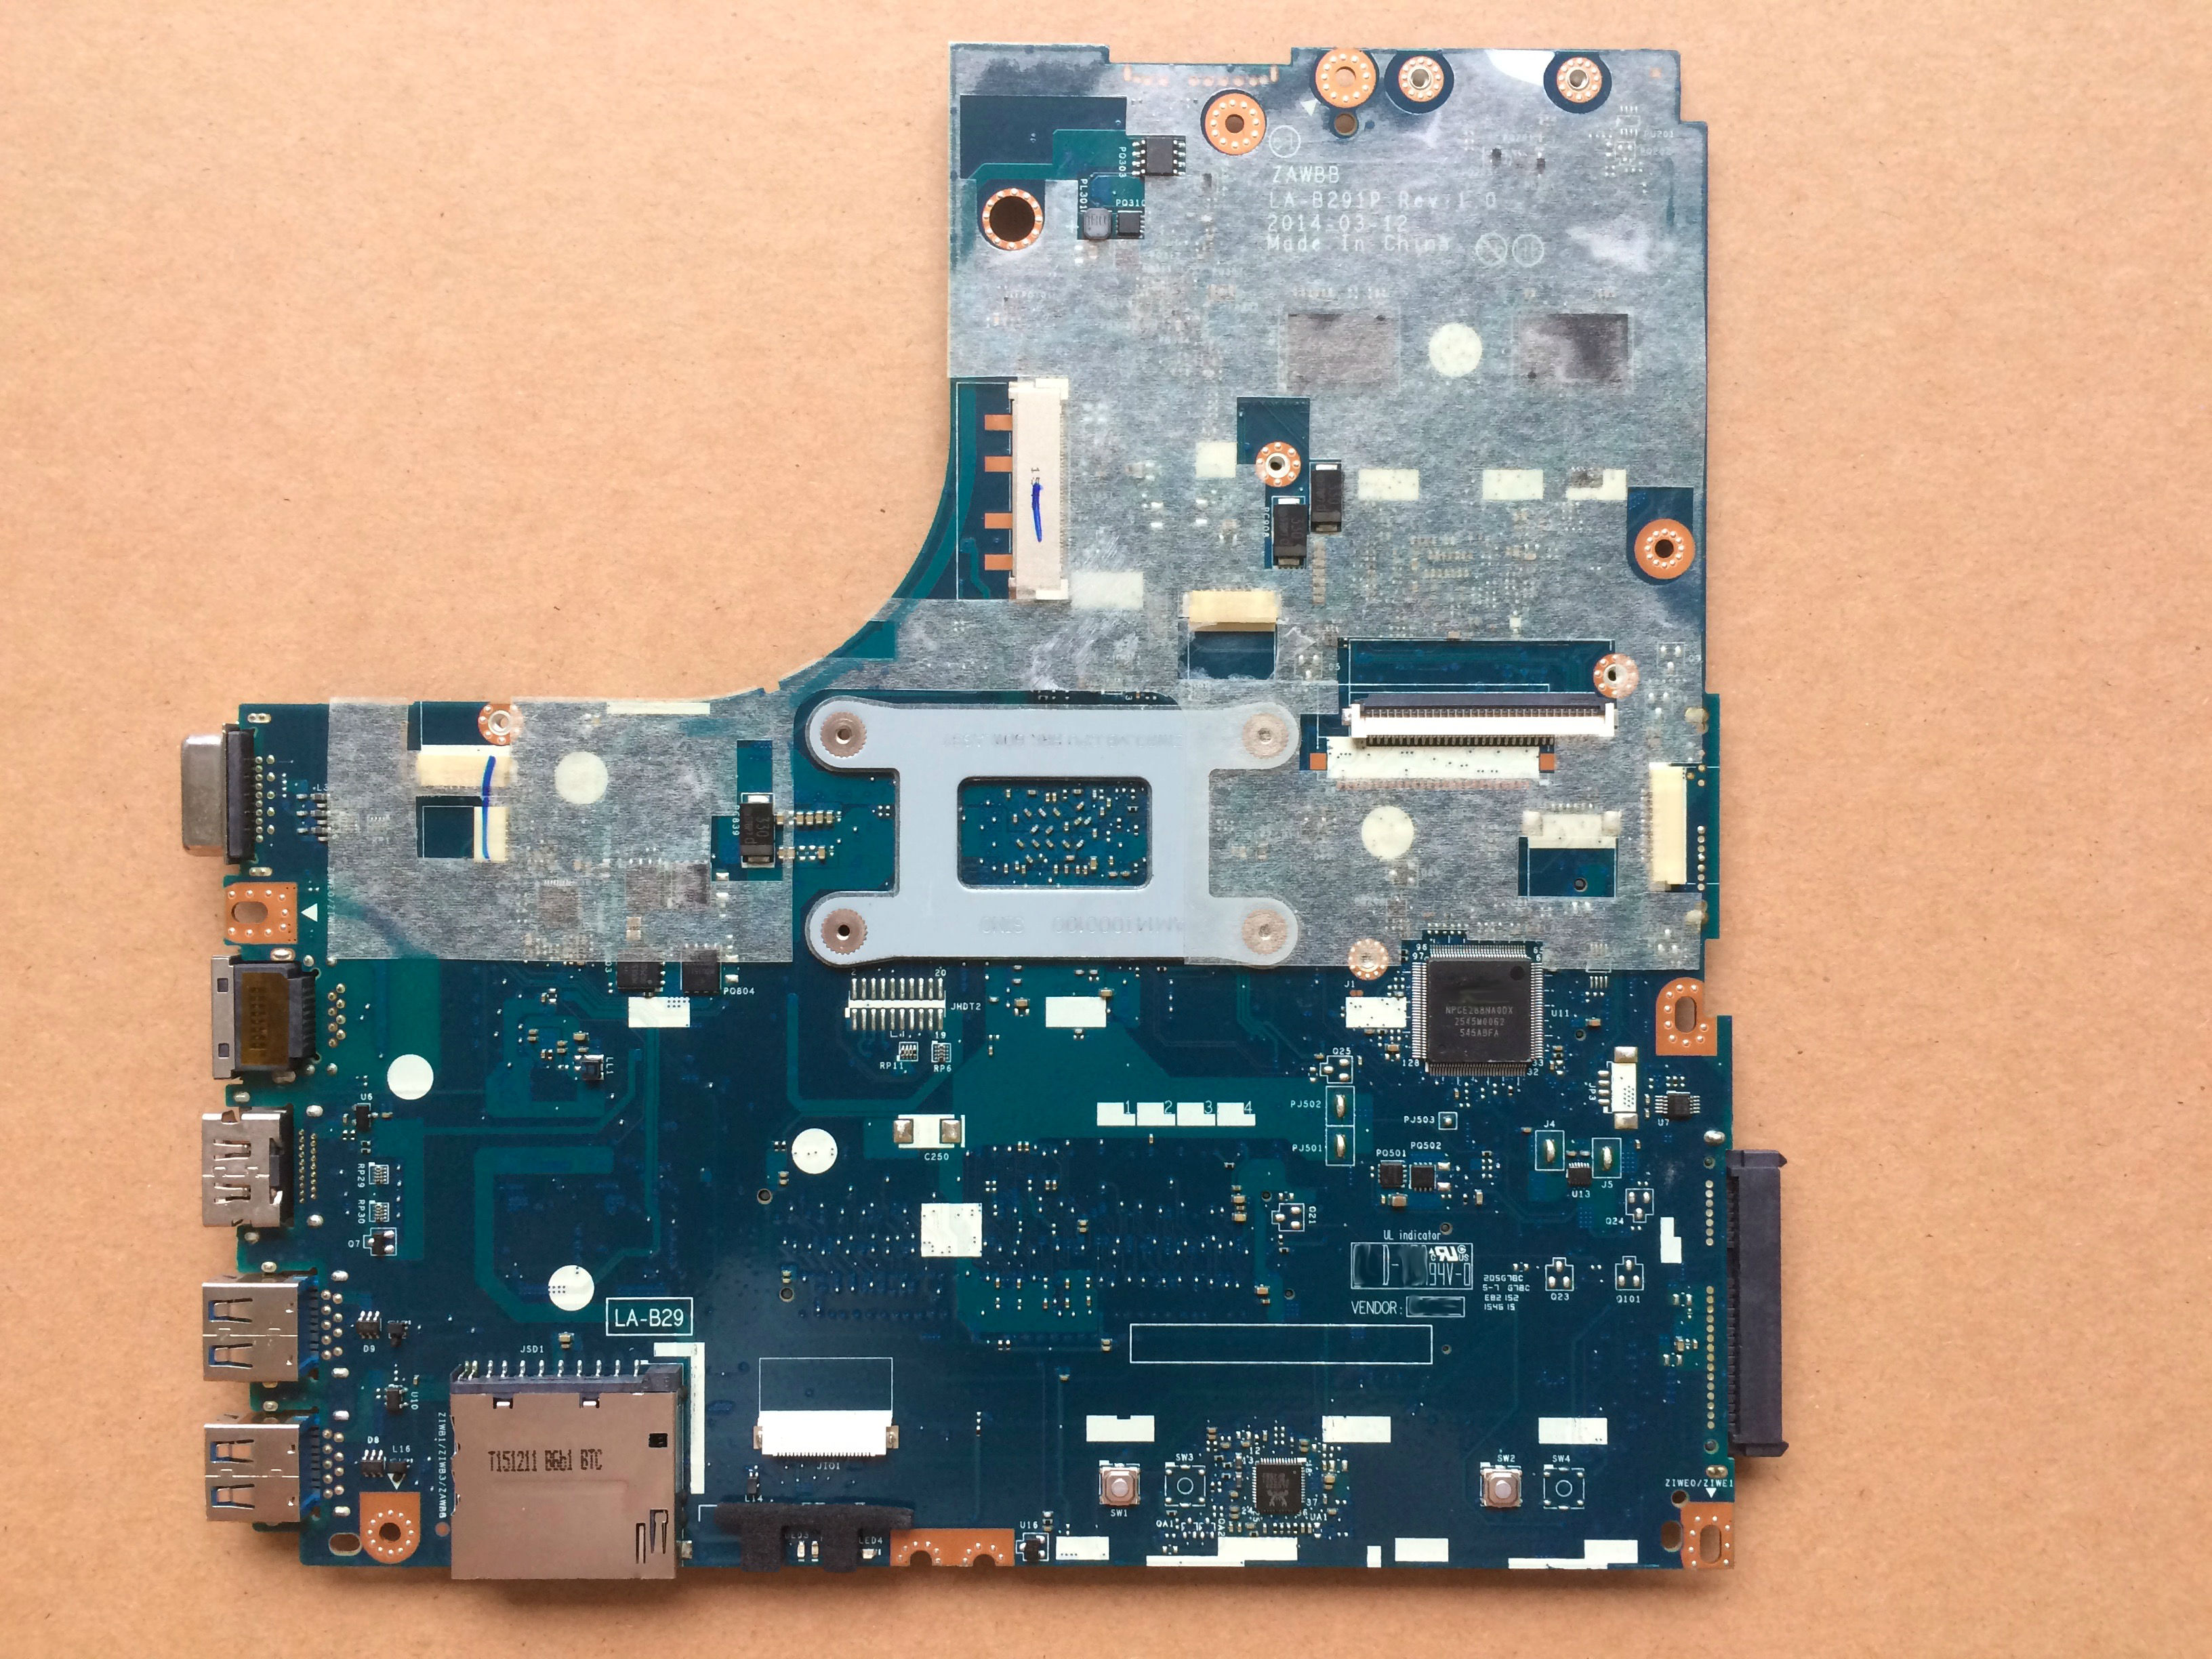 Image 2 - Free shipping A8 6410 CPU ZAWBB LA B291P B50 45 mainboard For Lenovo B50 45 laptop motherboard-in Motherboards from Computer & Office